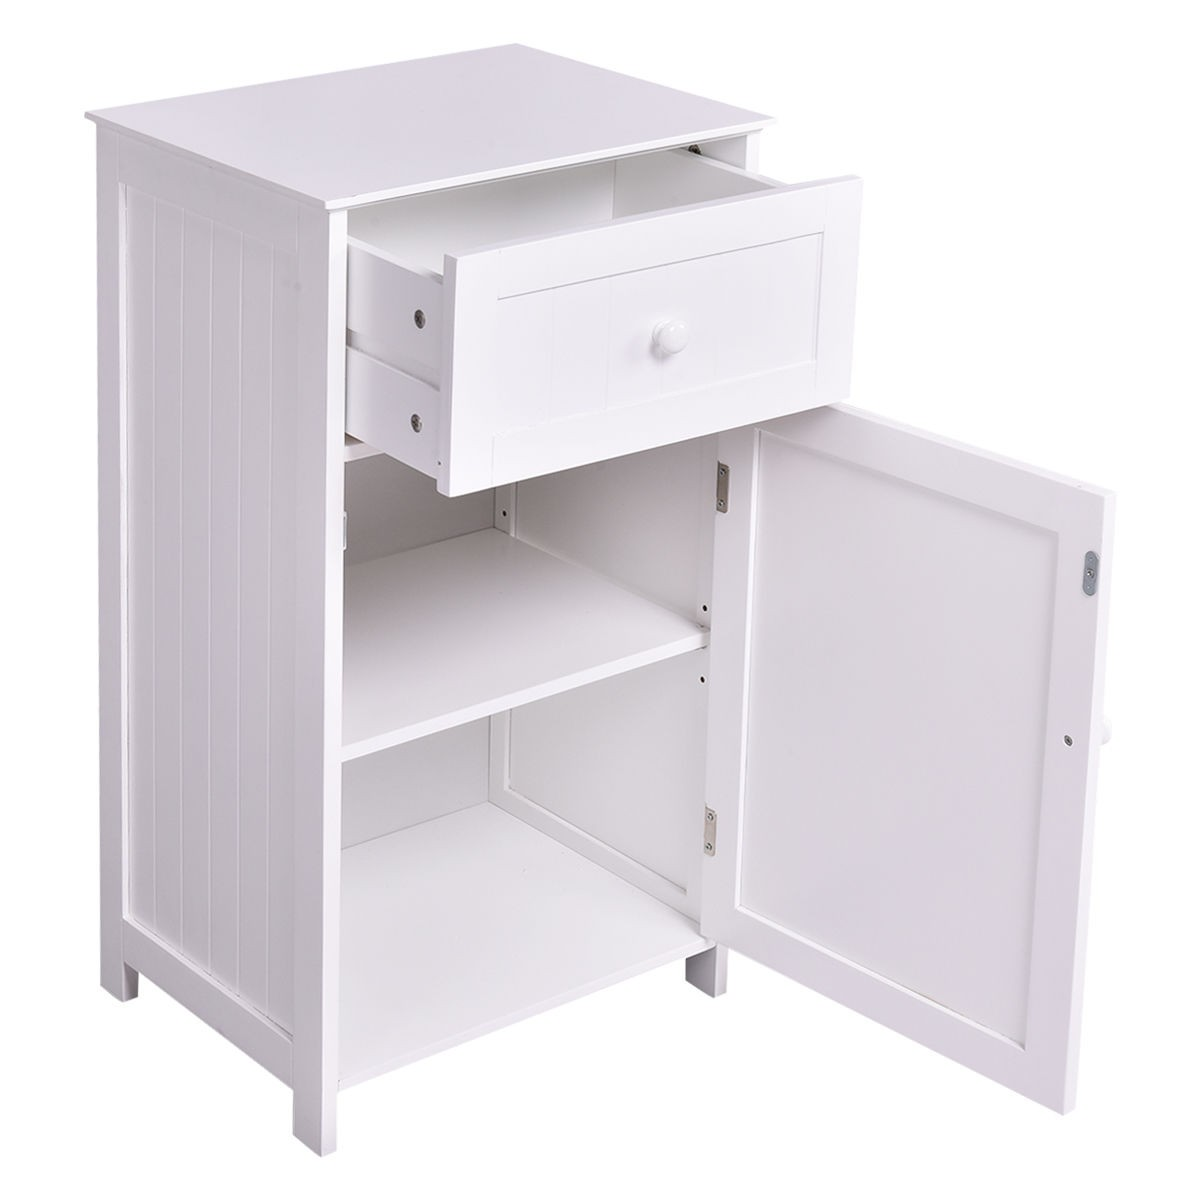 storage bathroom cabinets kitchen bathroom storage cabinet floor stand white wood 14579